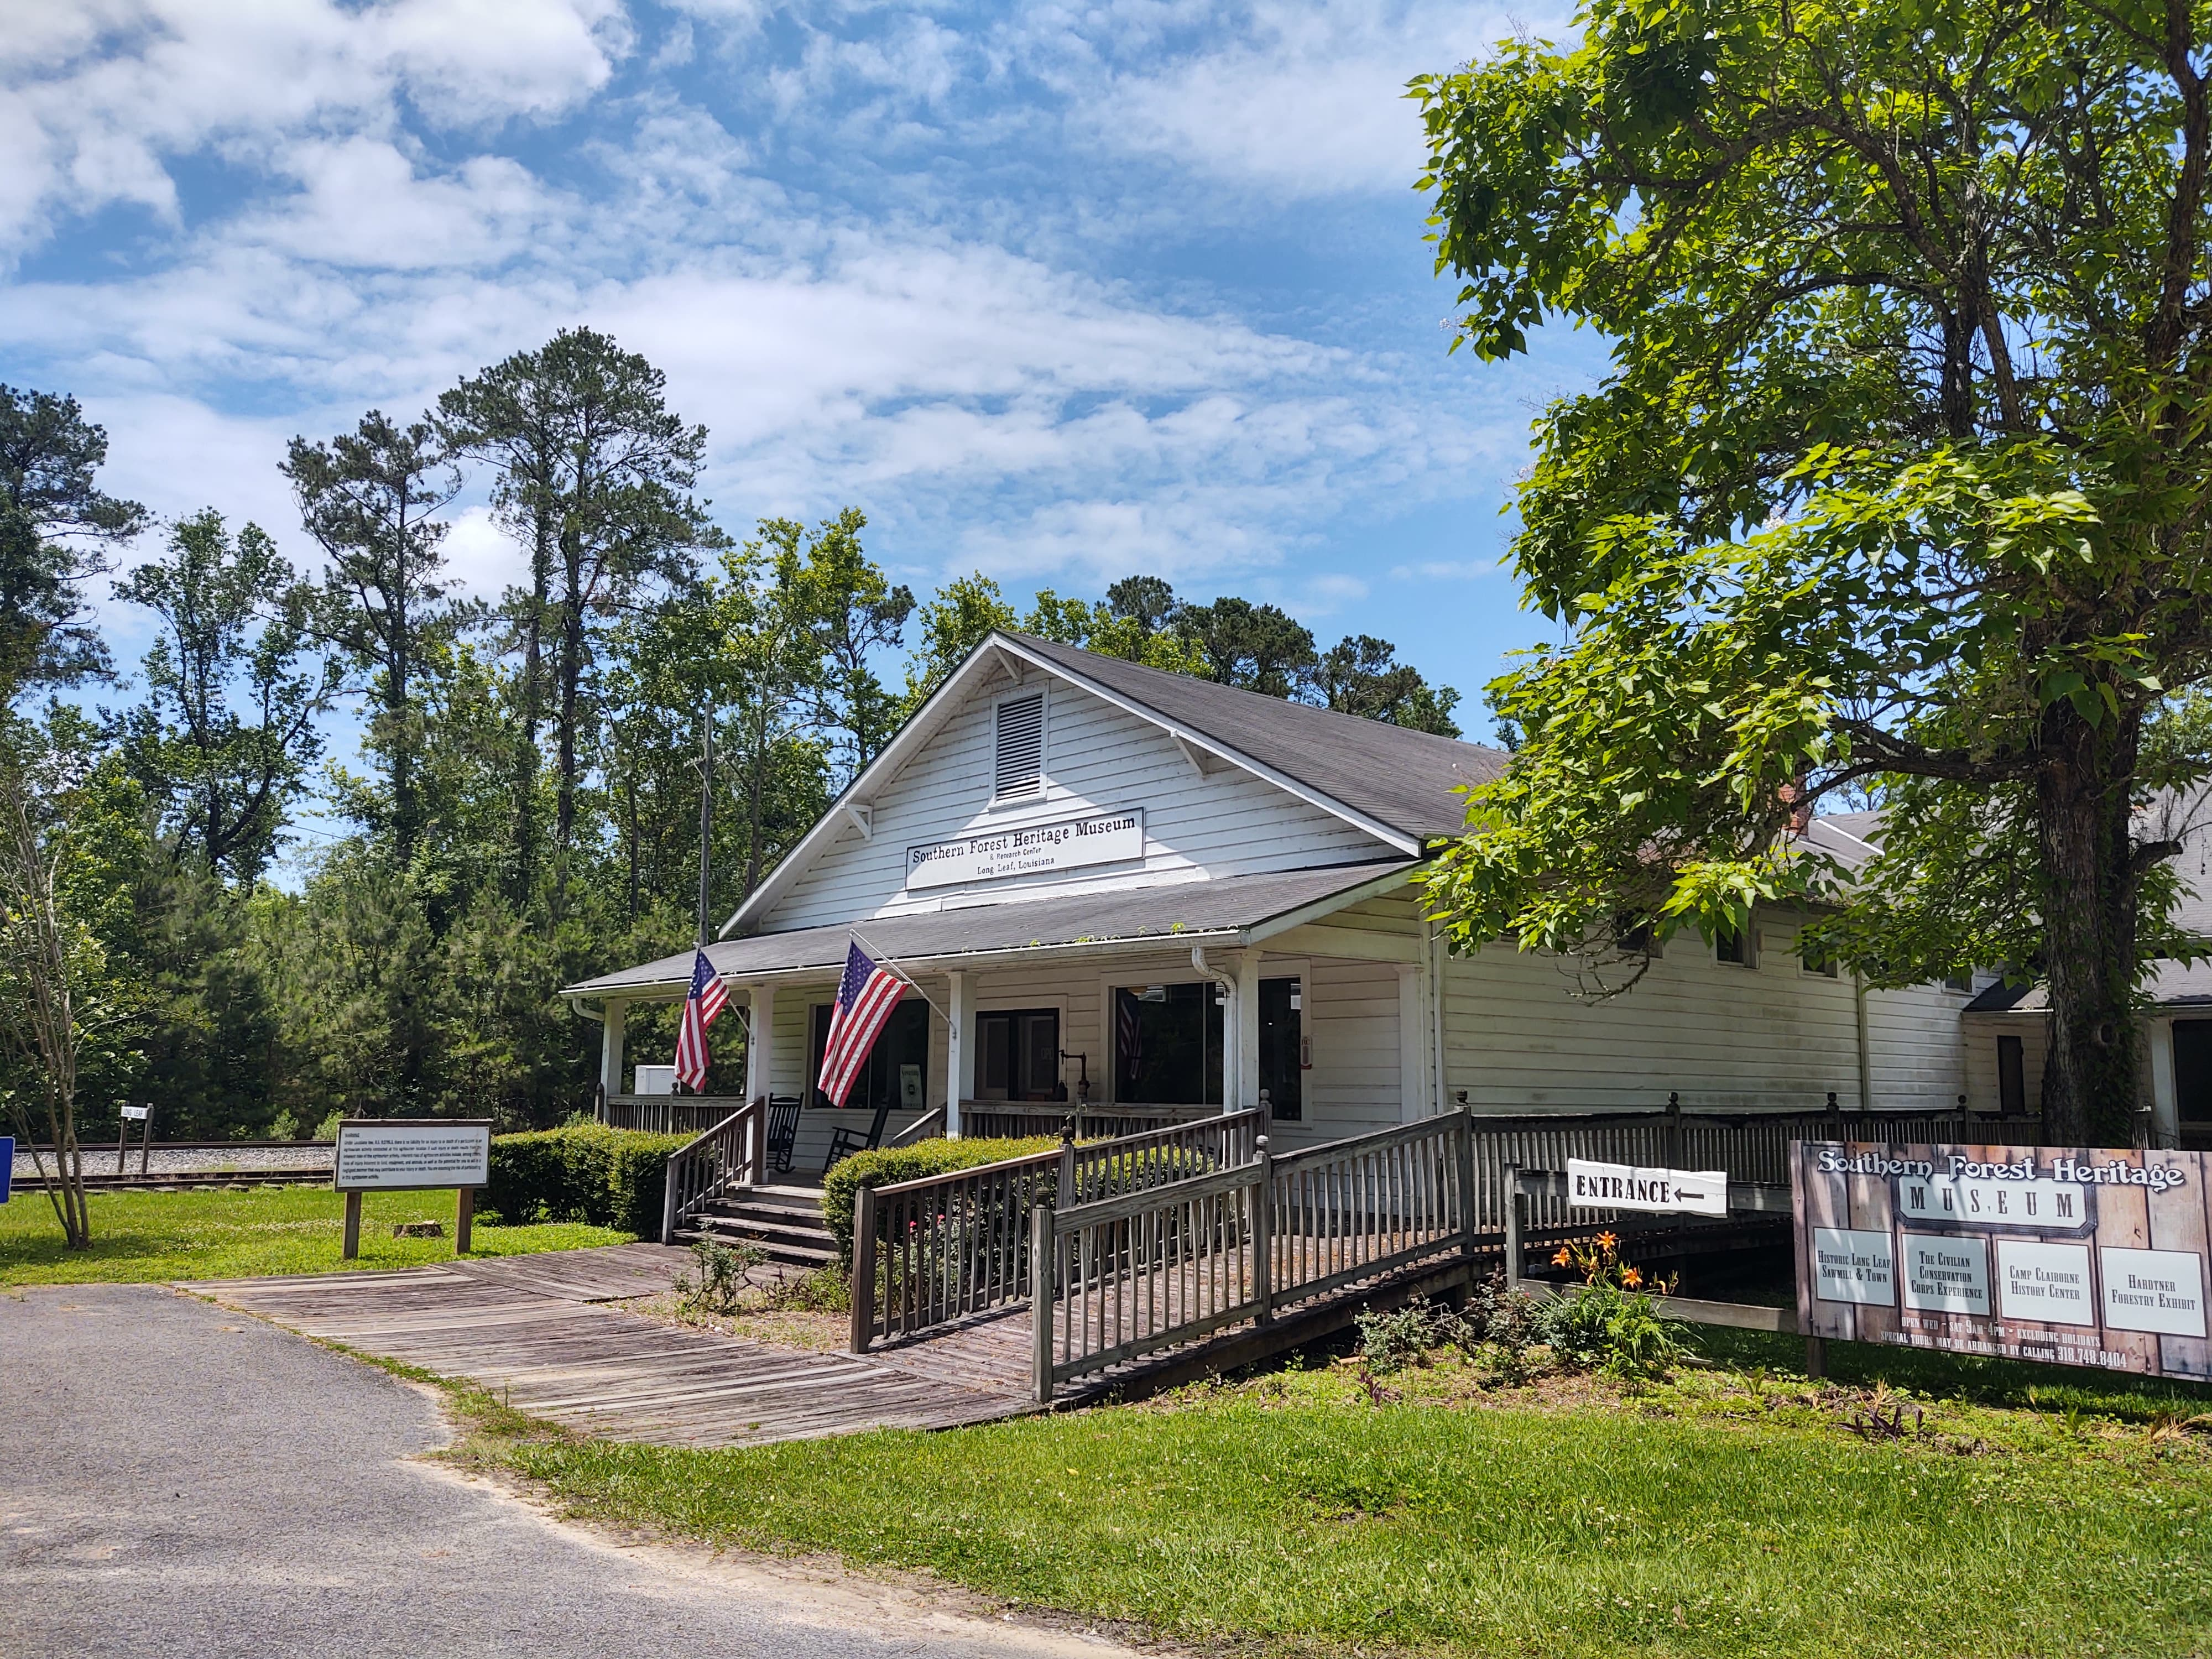 Southern Forest Heritage Museum Longleaf, Louisiana